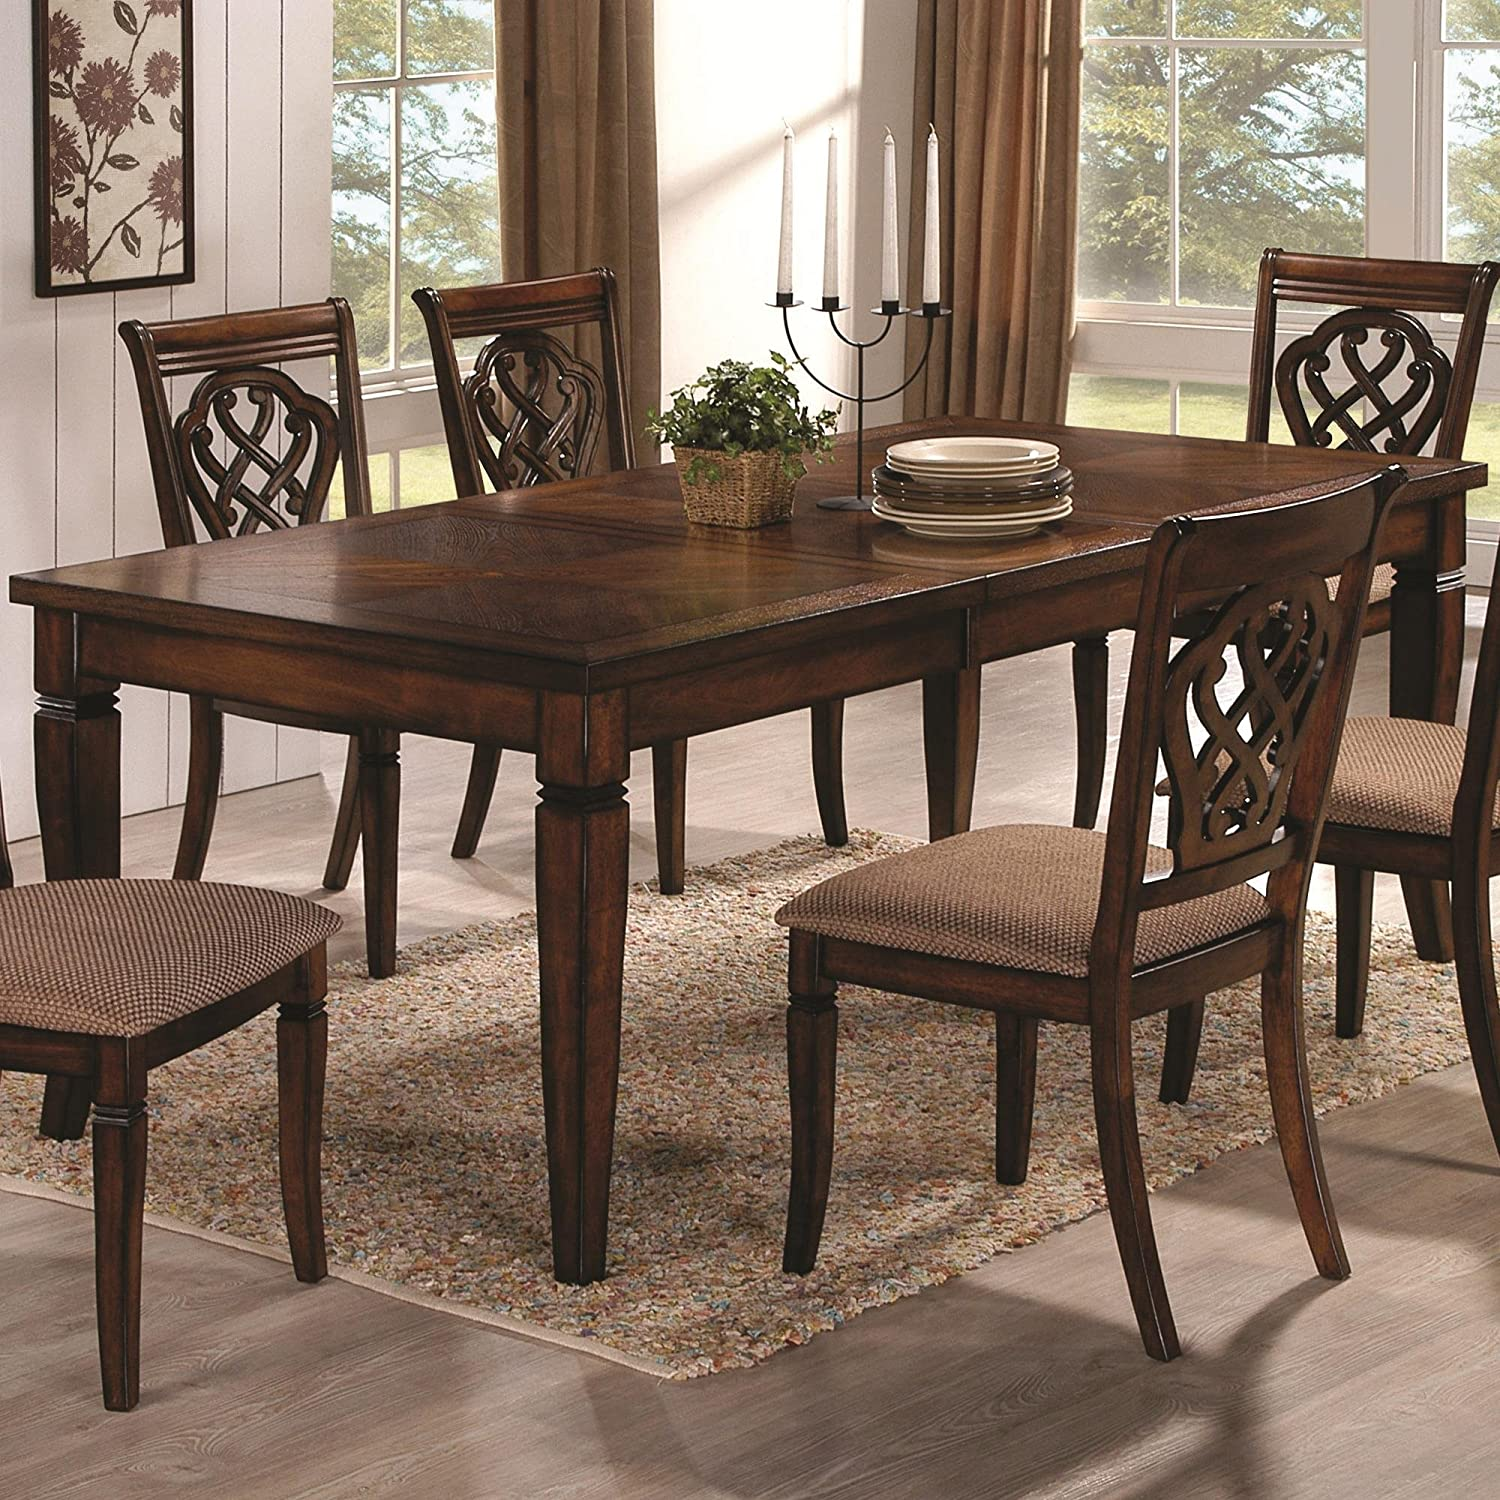 Amazon Coaster Home Furnishings Transitional Dining Table